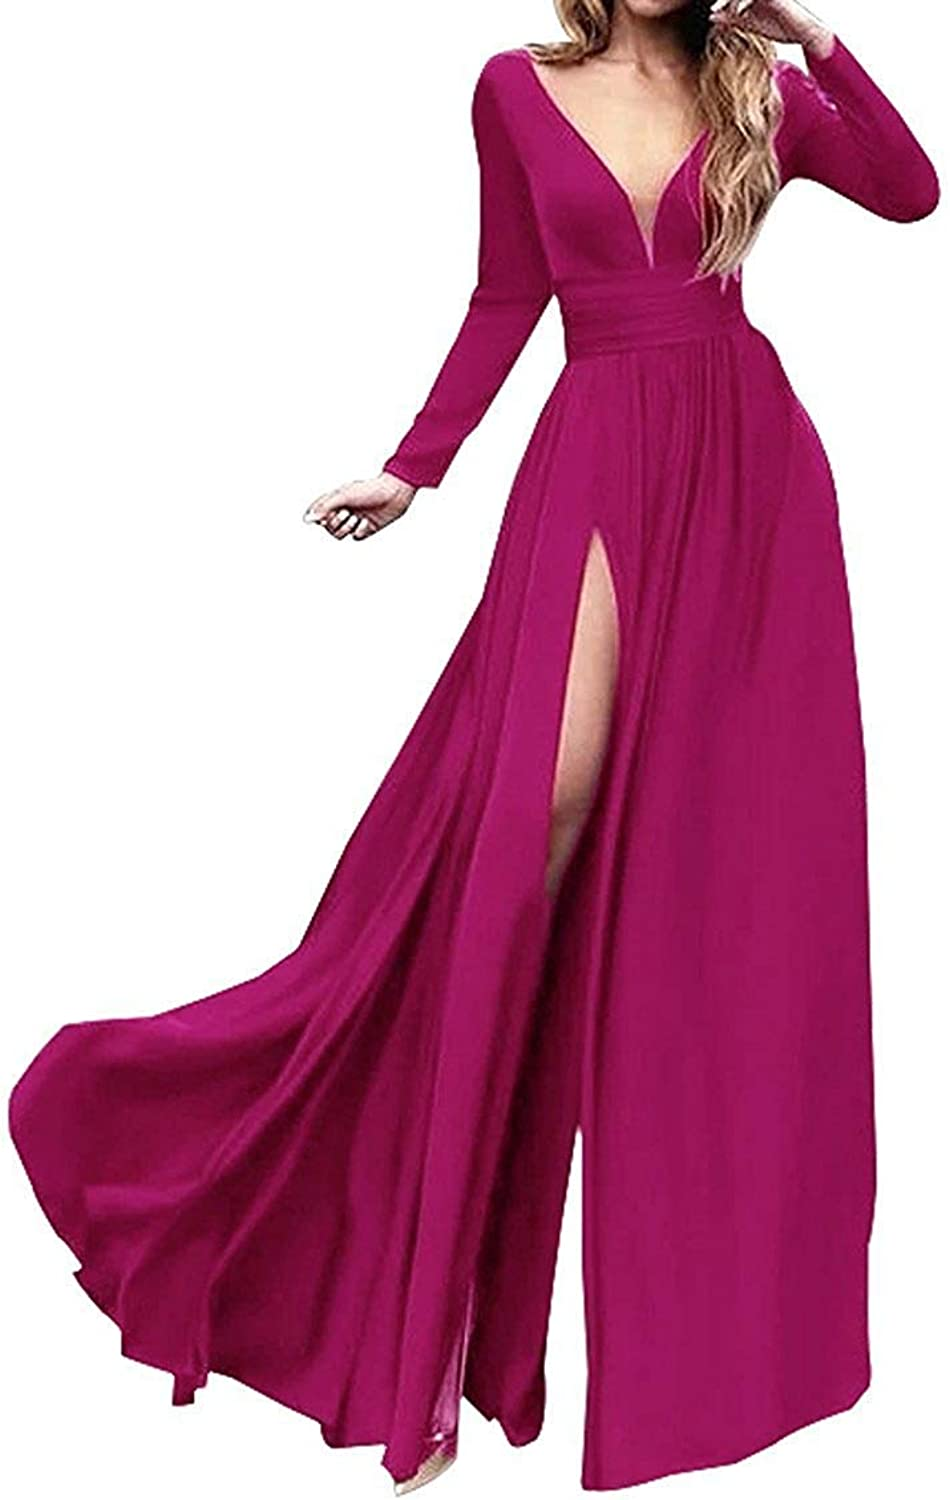 Sulidi Women's Sexy Double VNeck Long Sleeves Prom Dresses Side Slit Evening Gowns C099